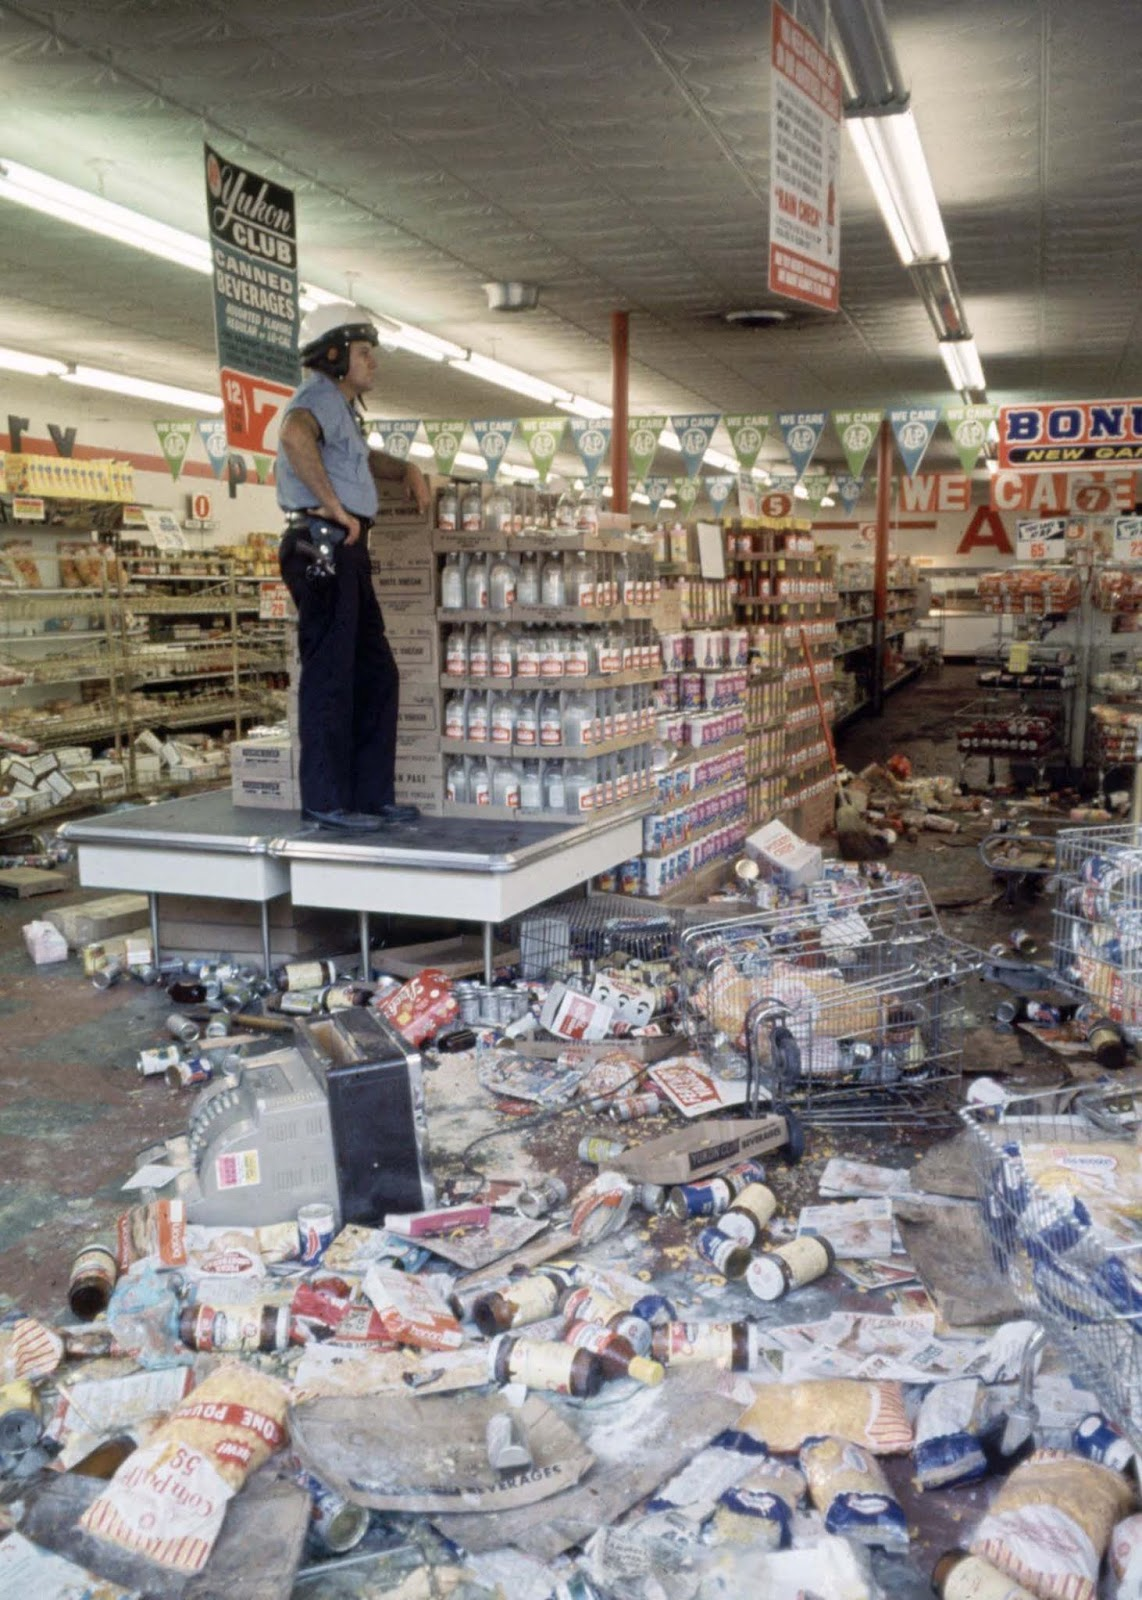 Detroit police officer standing guard over a grocery store, which was looted and damaged during the riot.